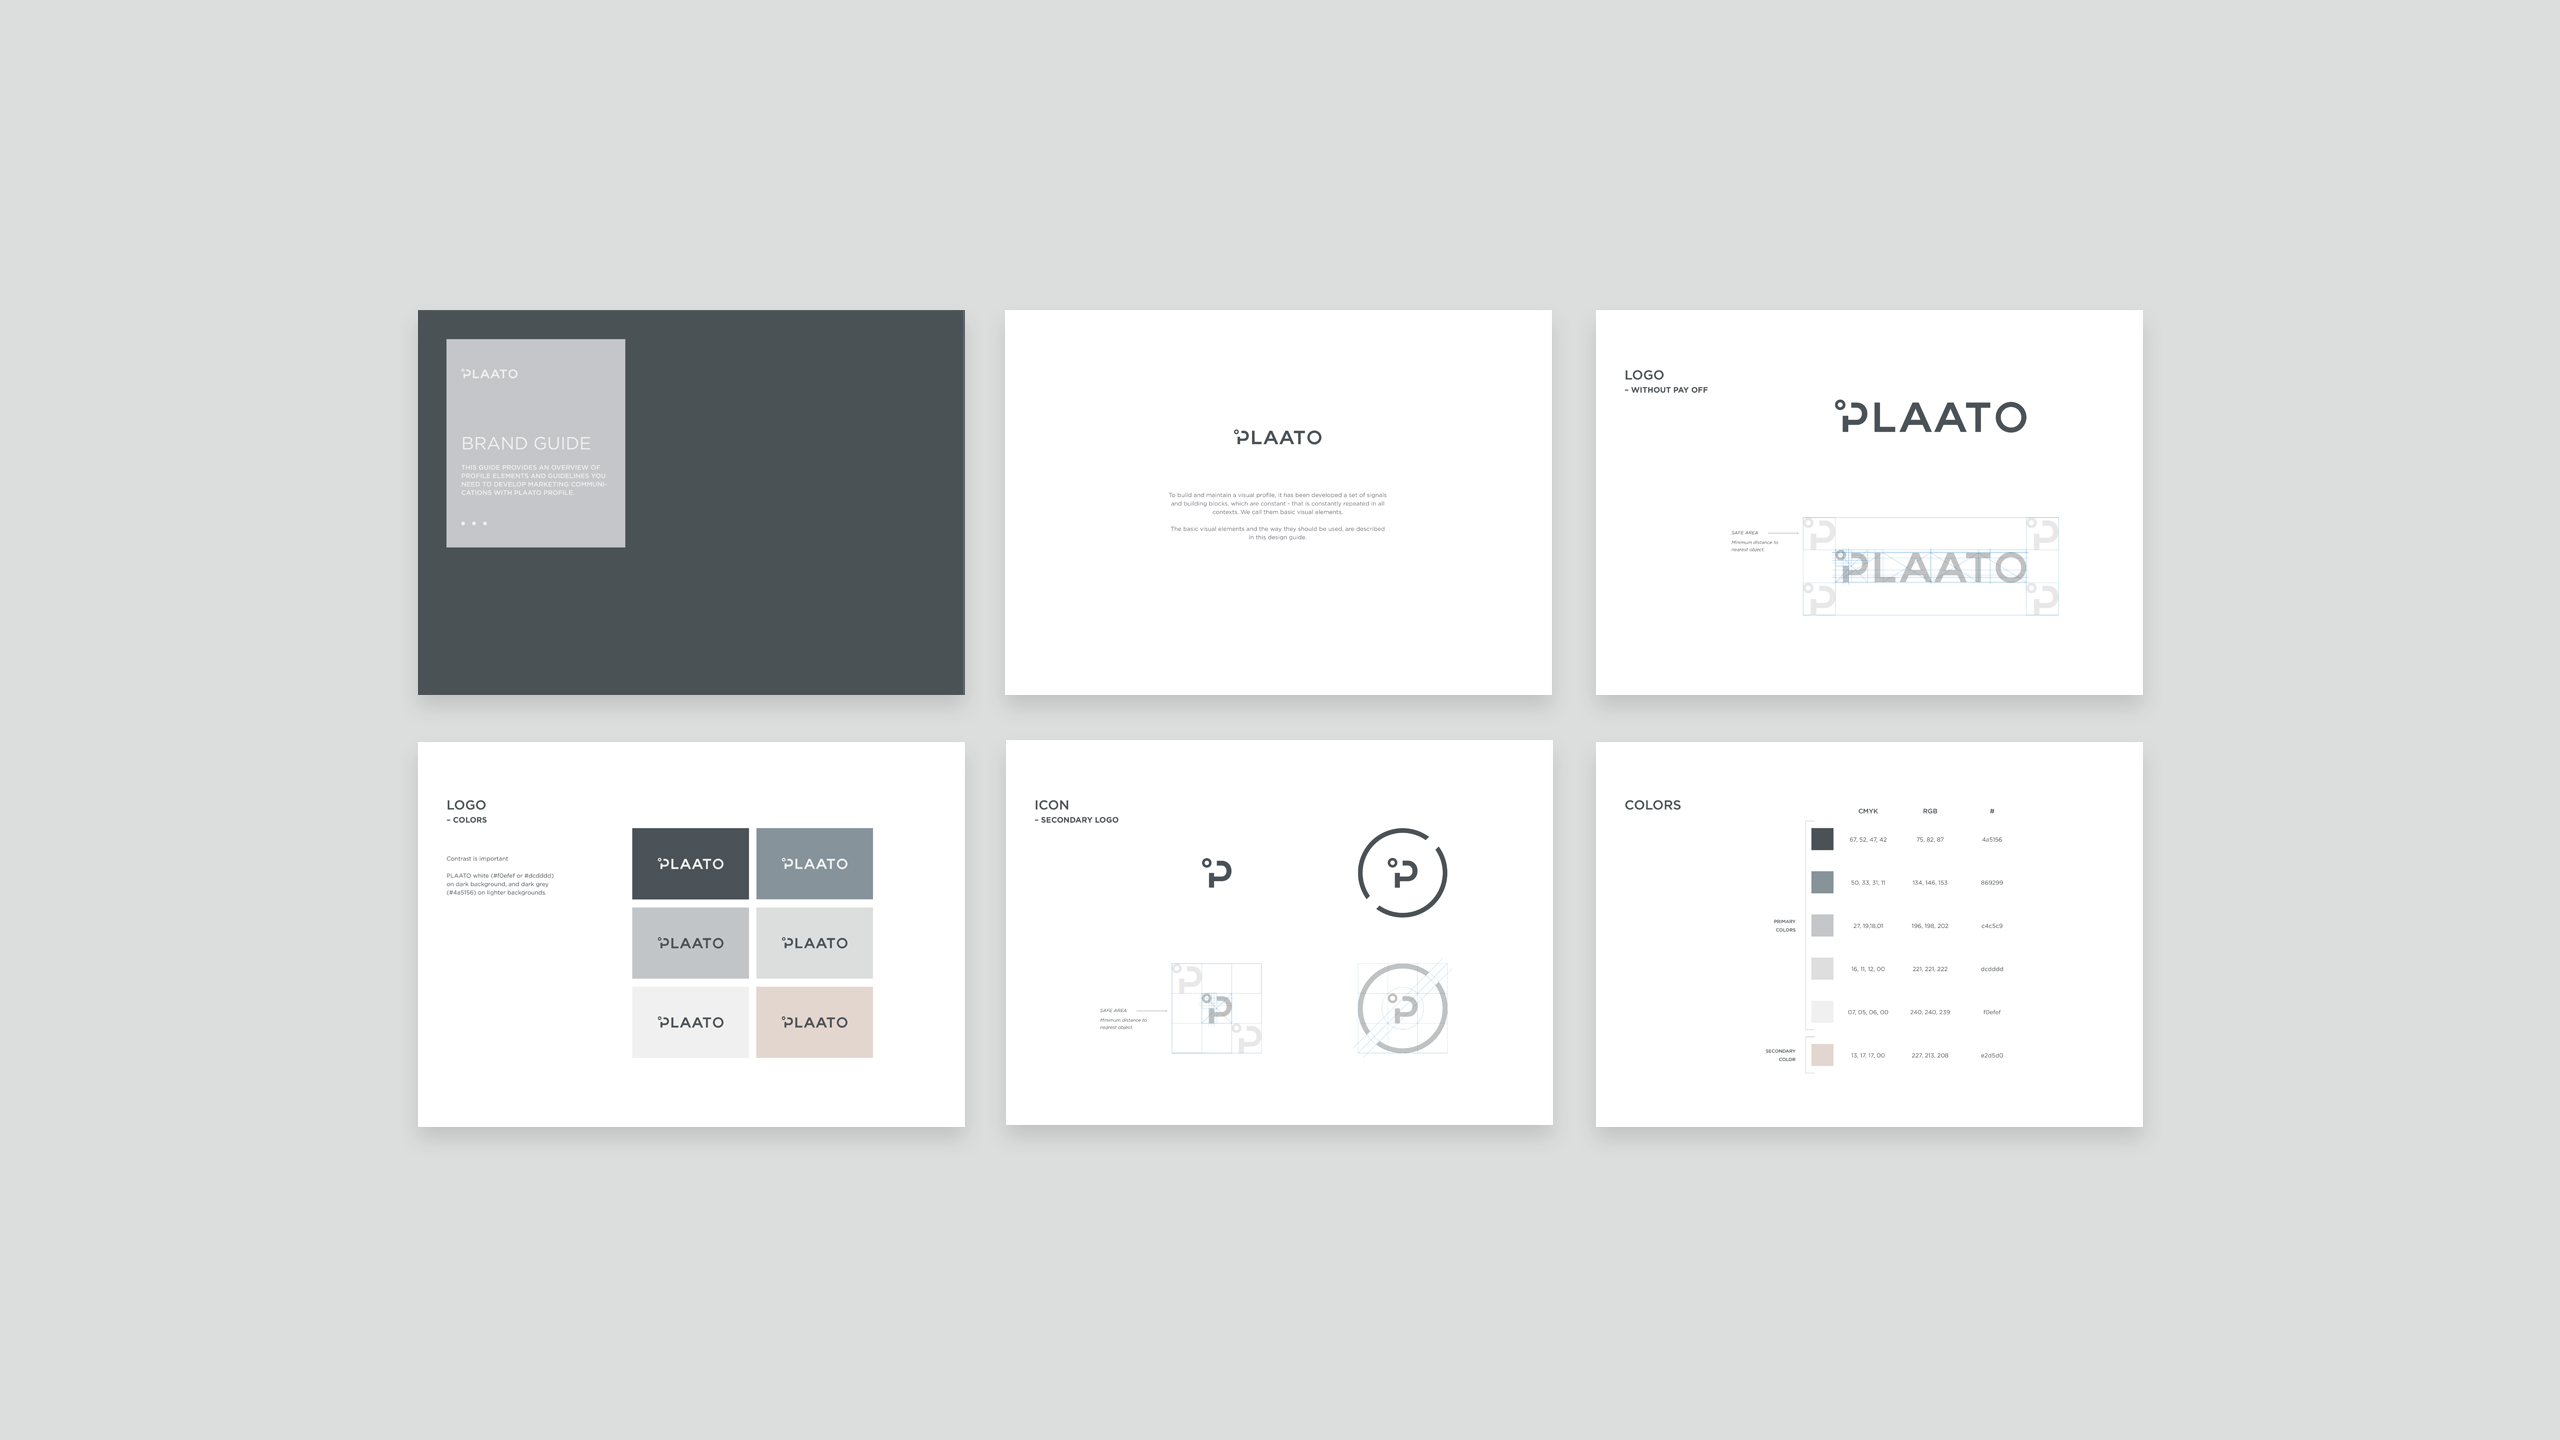 plaato brand guide, designed by SBDS